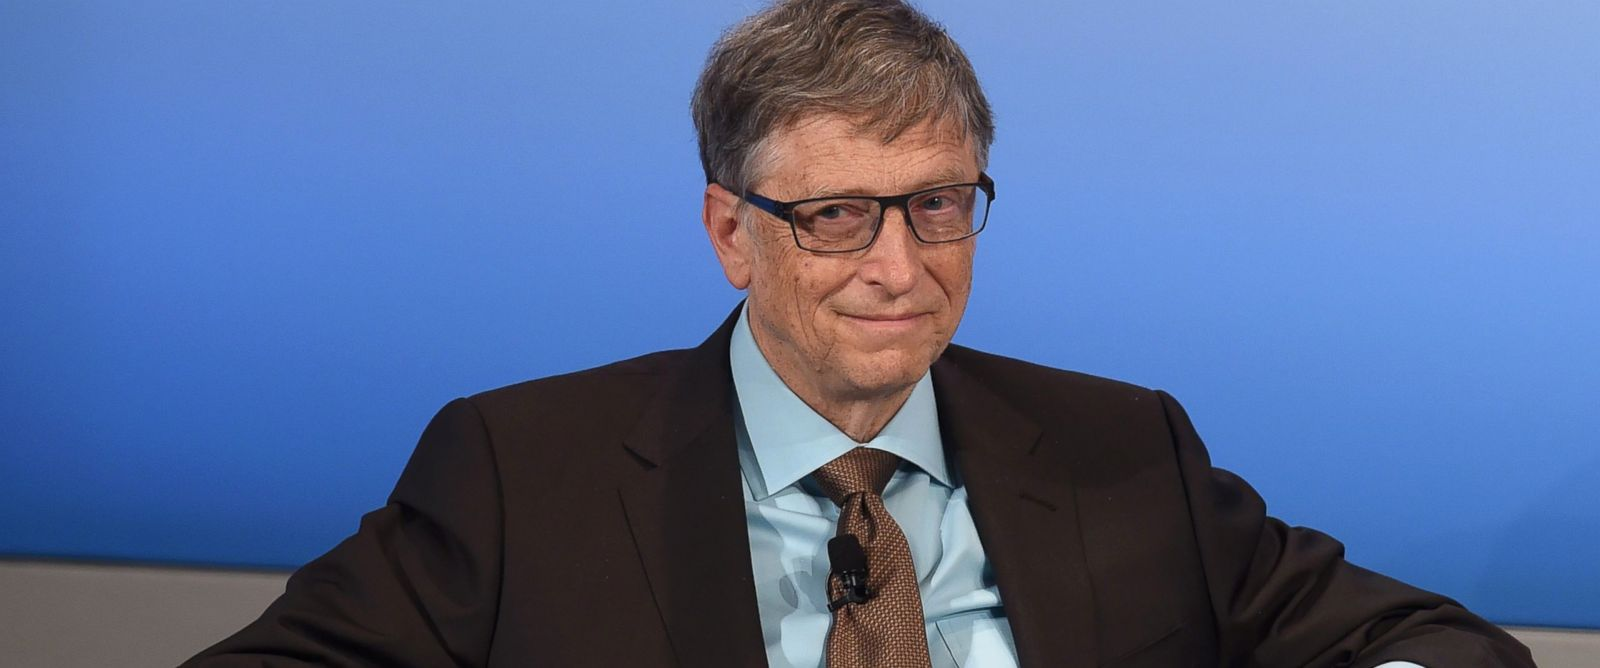 PHOTO: Microsoft founder Bill Gates on Feb. 18, 2017 at the 53rd Munich Security Conference (MSC) at the Bayerischer Hof hotel in Munich, Germany.